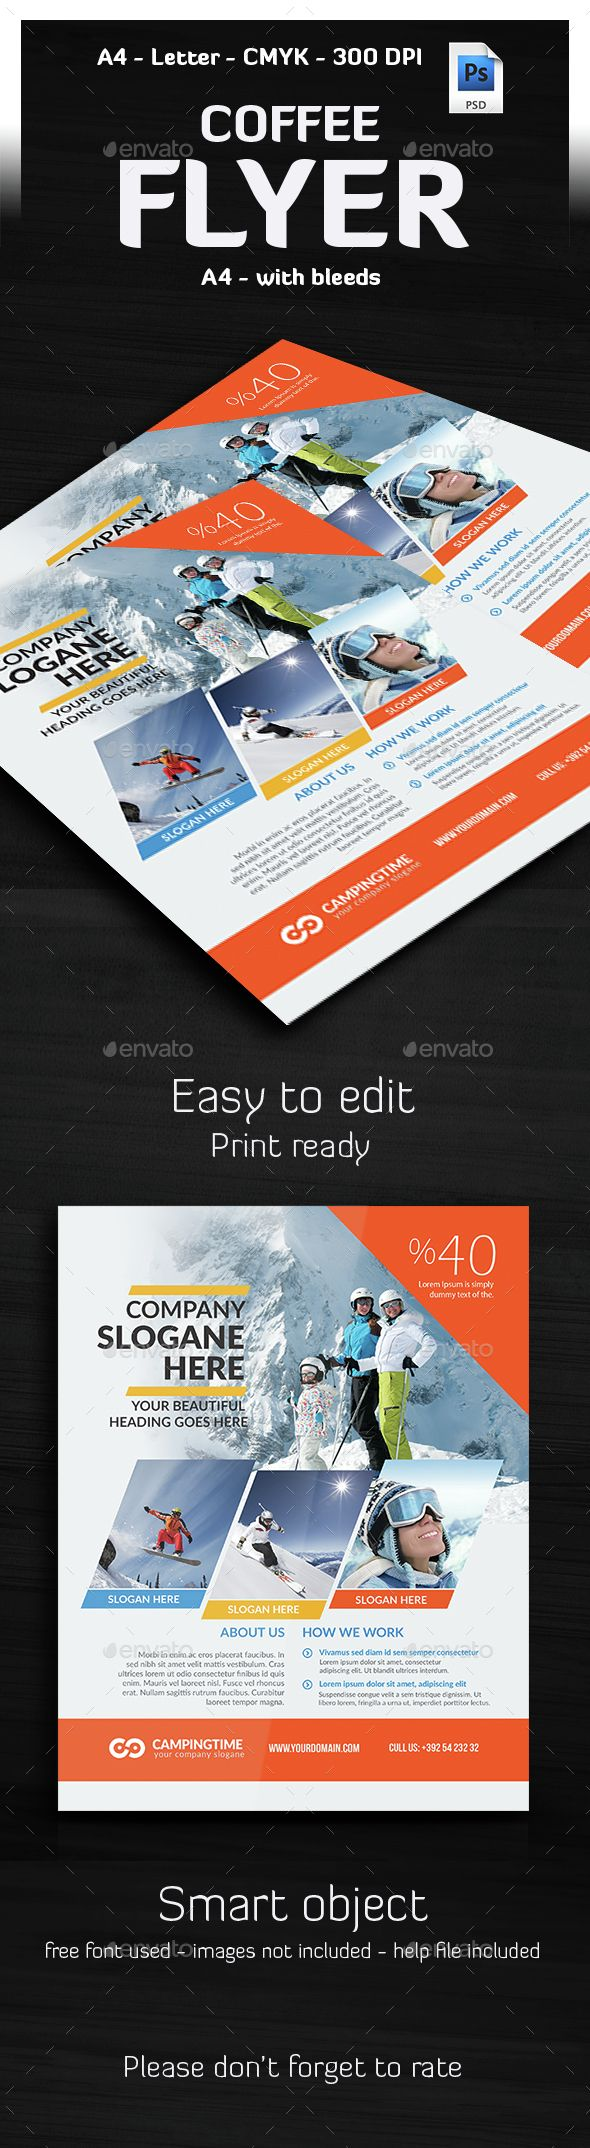 201 Best Images About Flyer Templates On Pinterest